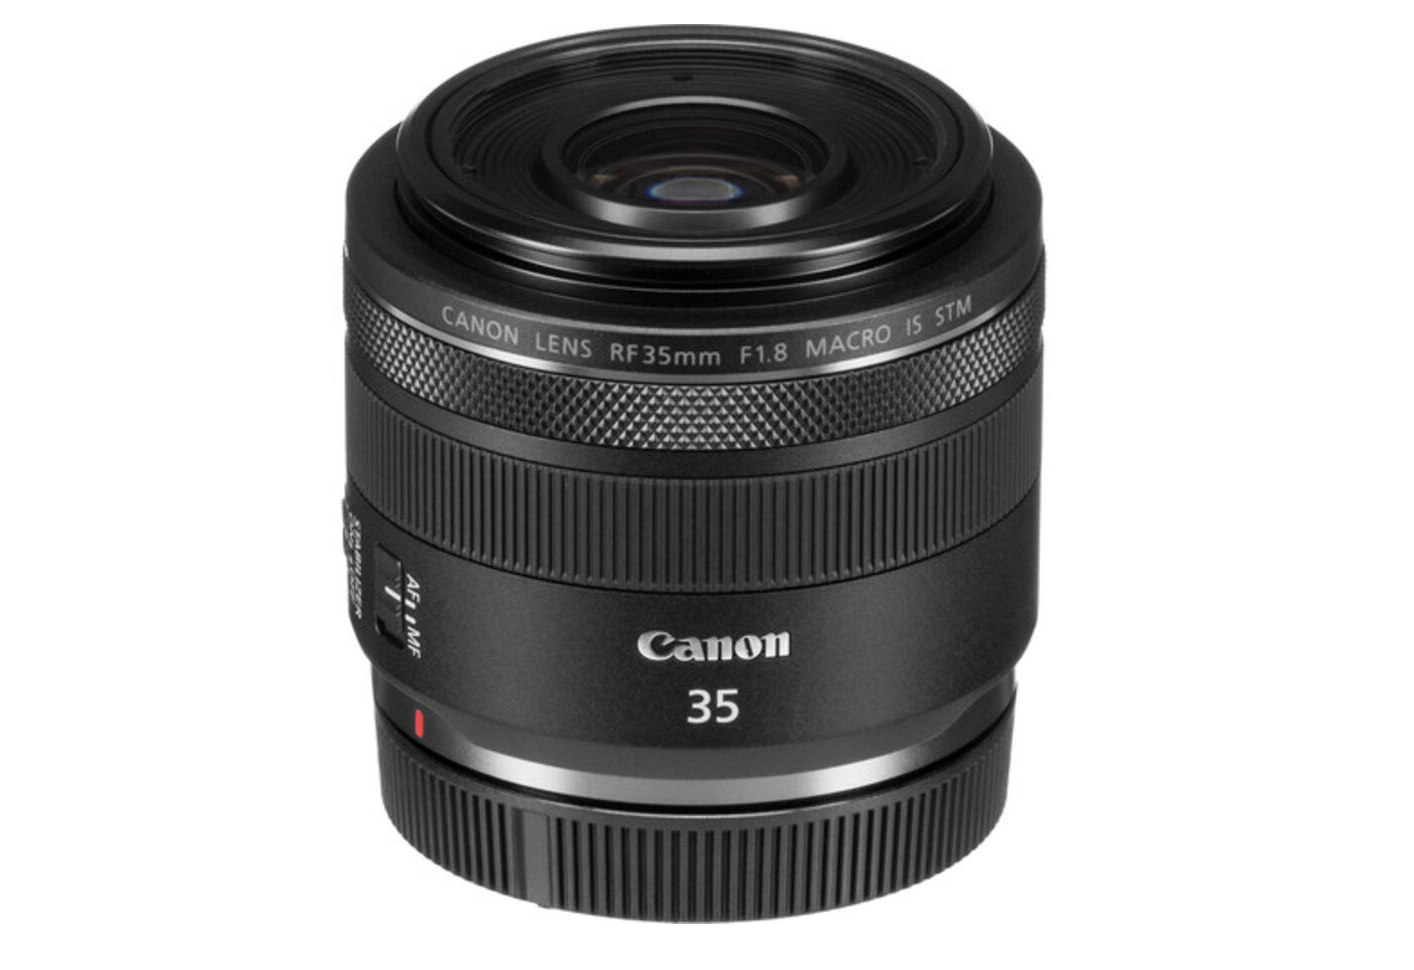 Canon RF 35mm f/1.2L USM Lens Coming in Late 2021 with EOS R3